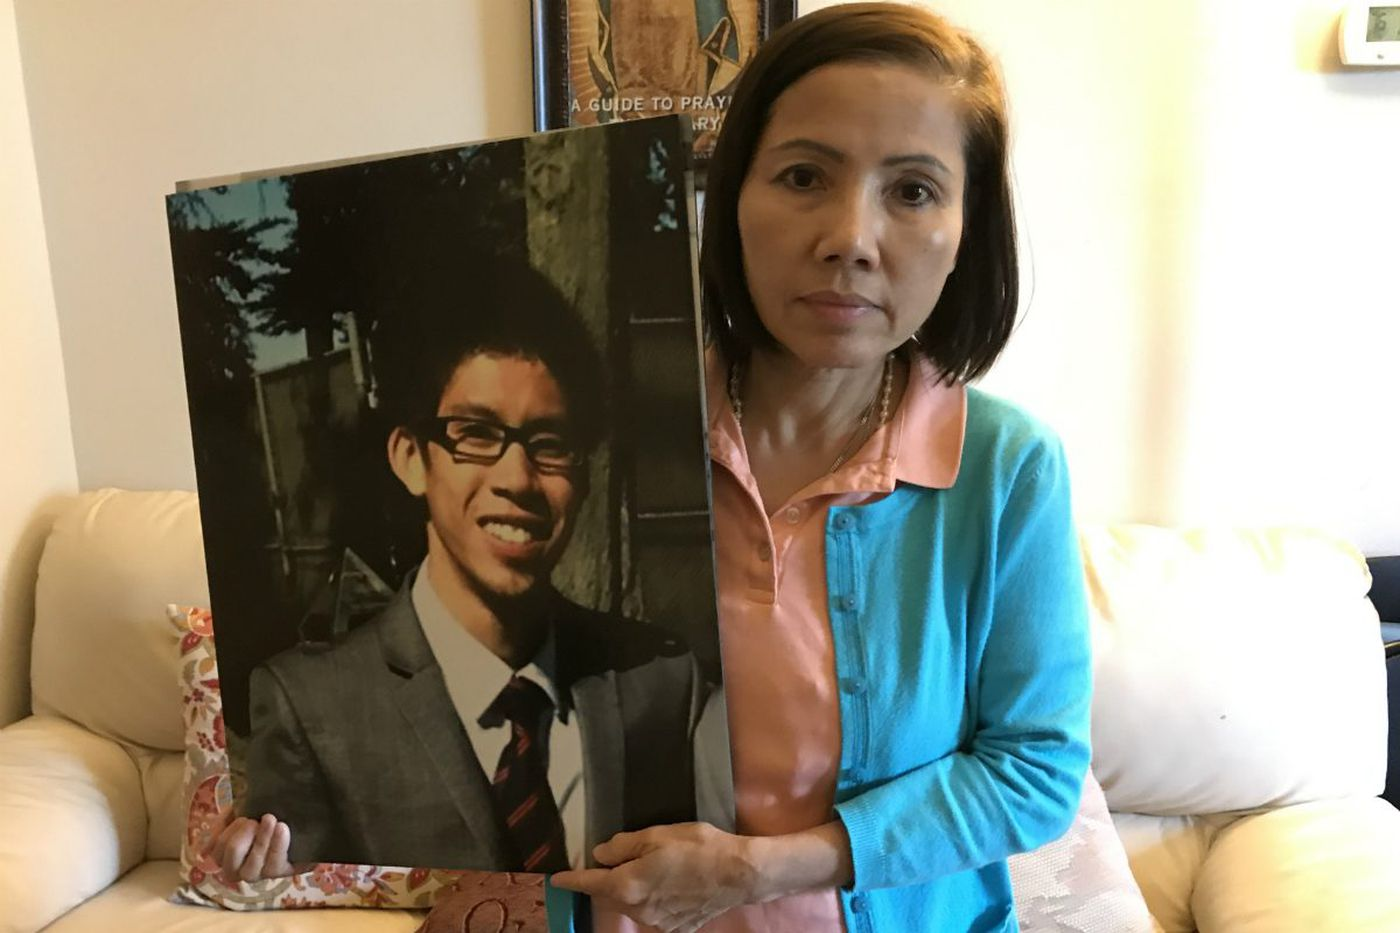 Two months later, Narberth mother recalls grief: 'John, John, why don't you talk with me?'